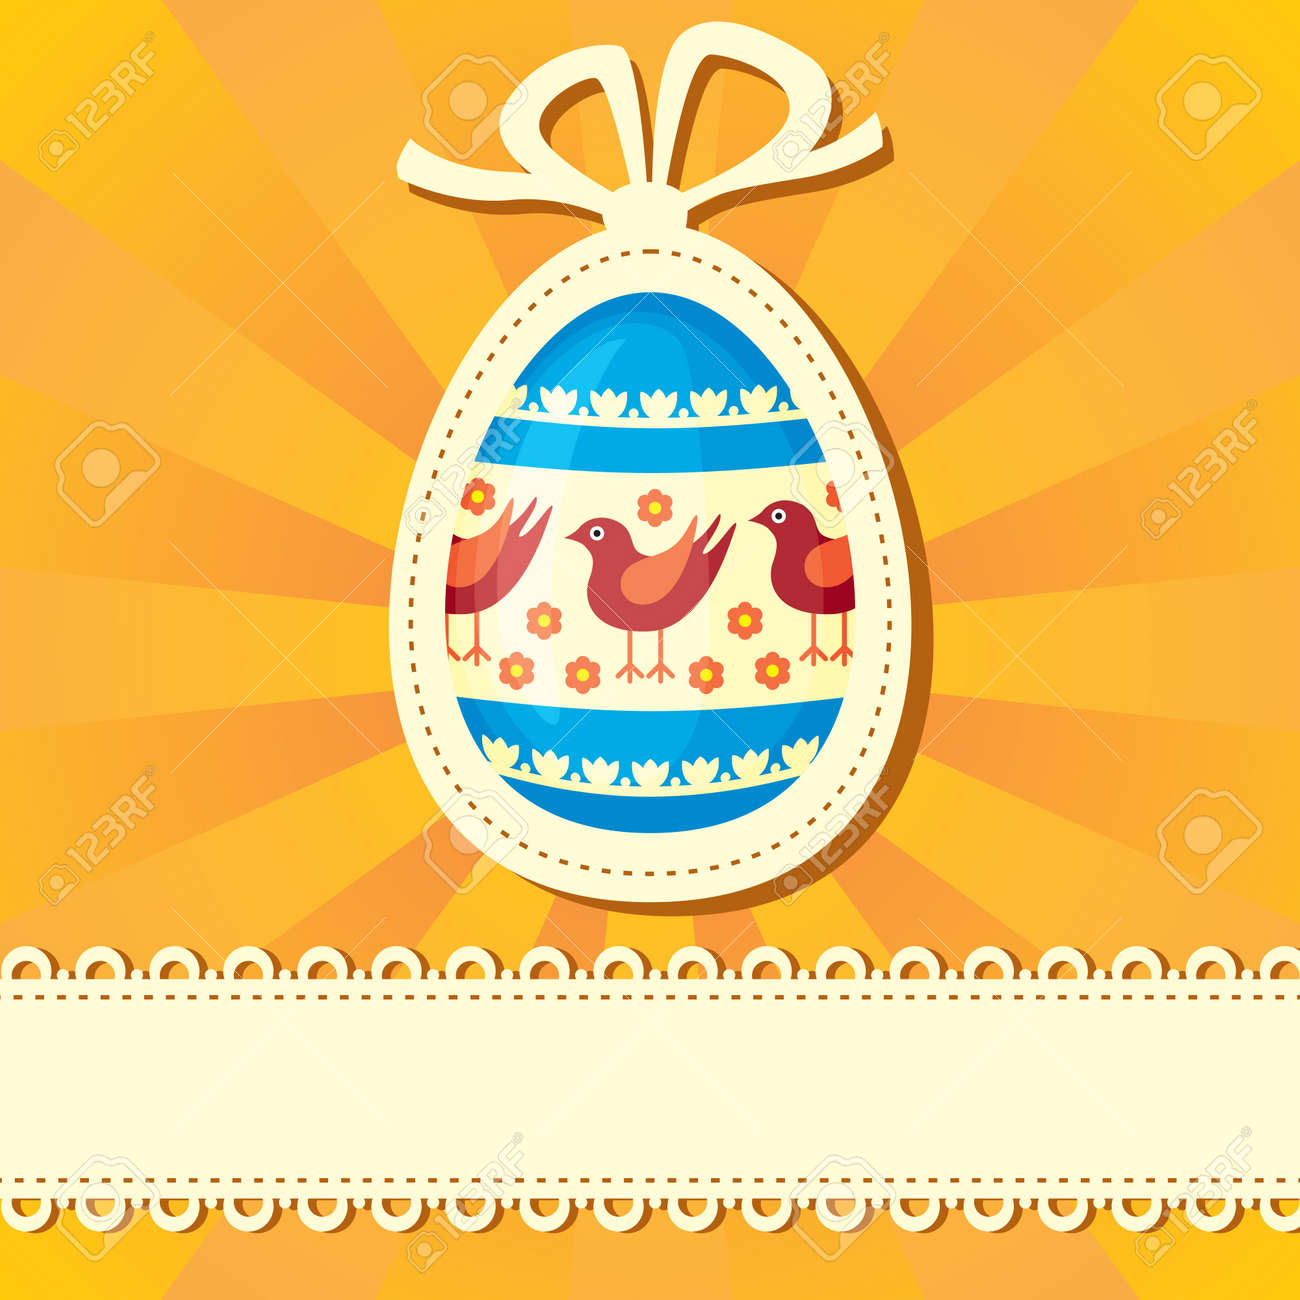 Easter congratulatory background with painted Easter egg Stock Vector - 18224657